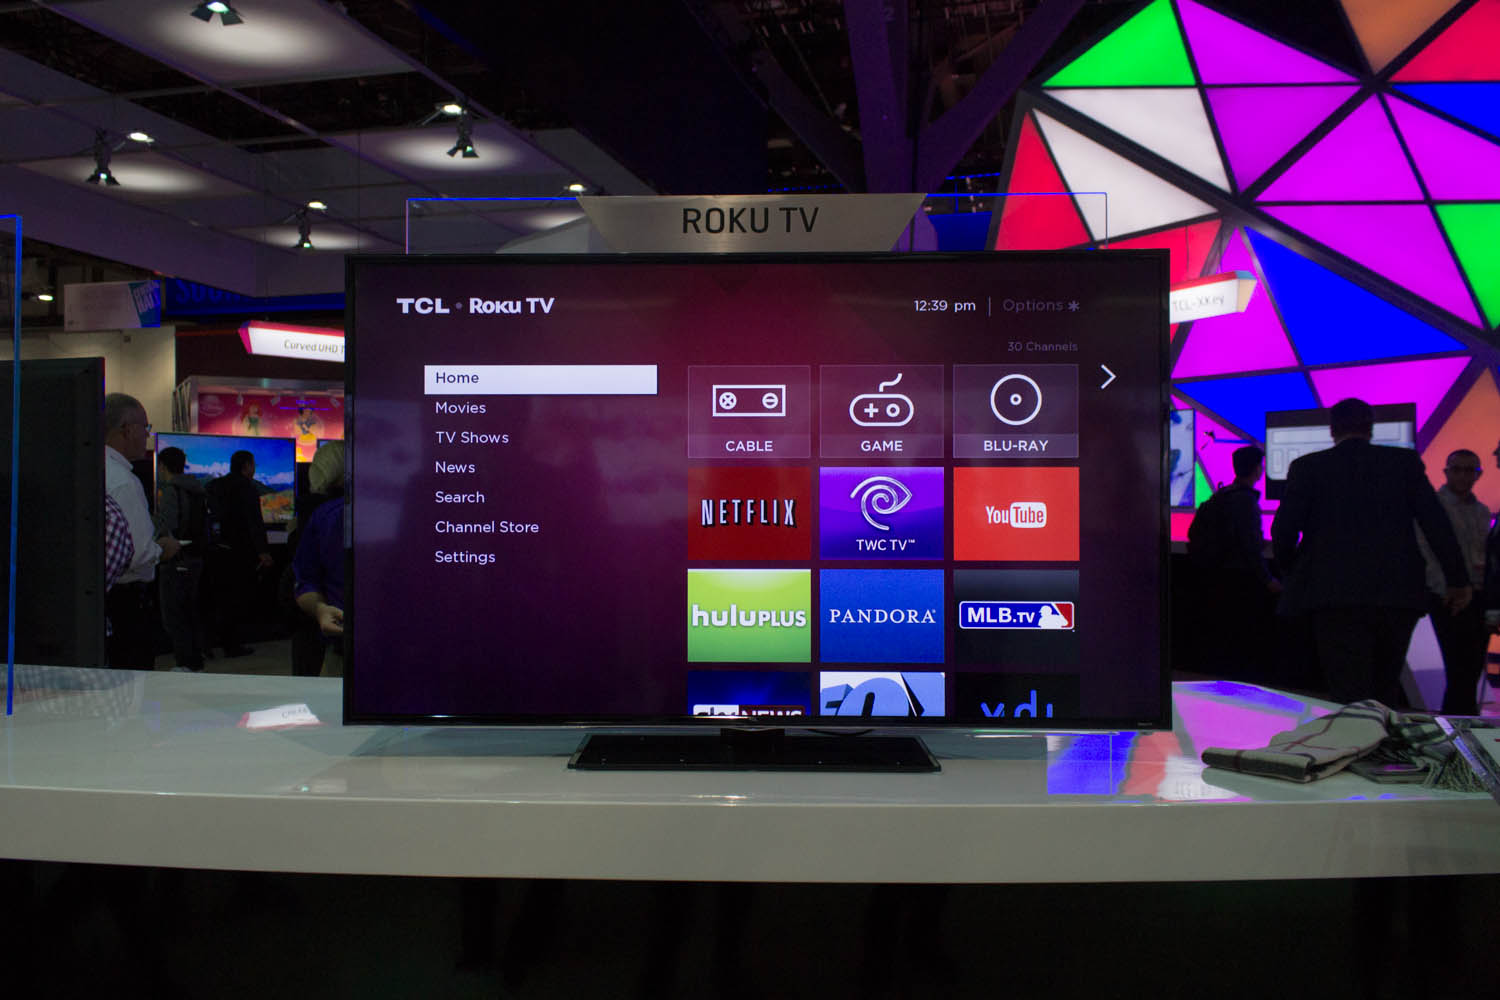 The Roku TV is easy. Almost... too easy.